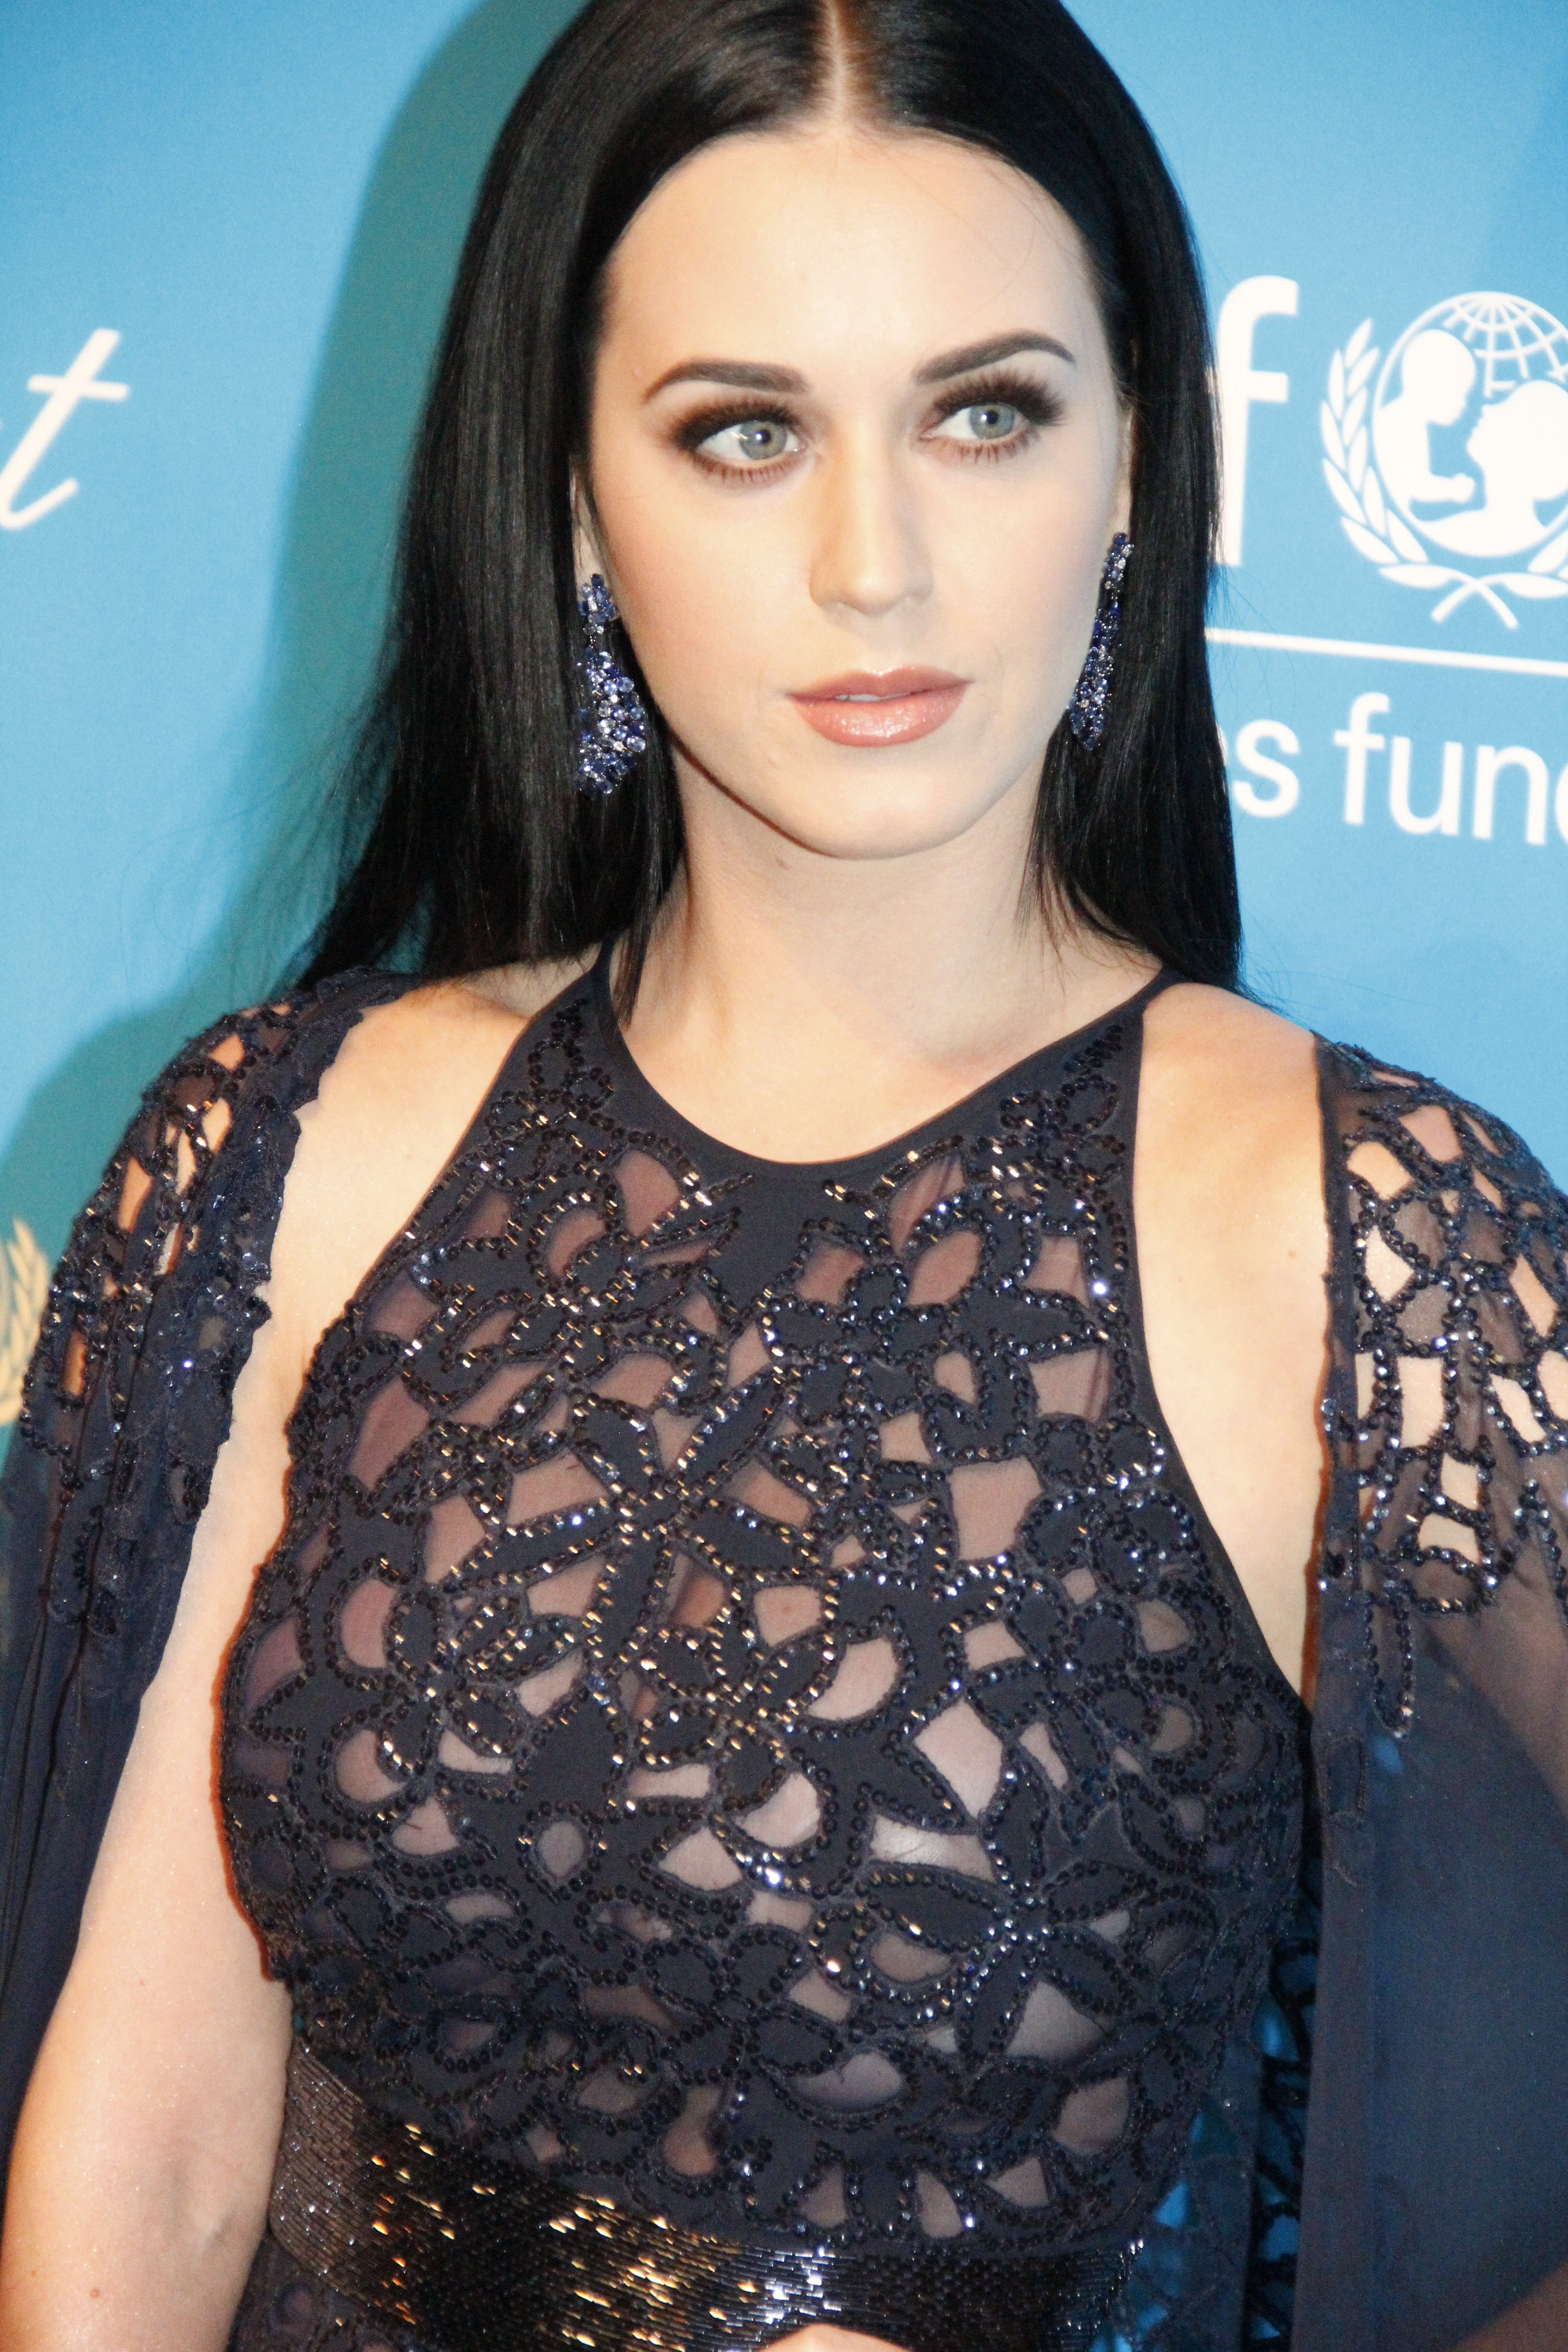 File:Katy Perry UNICEF 2, 2012.jpg - Wikimedia Commons